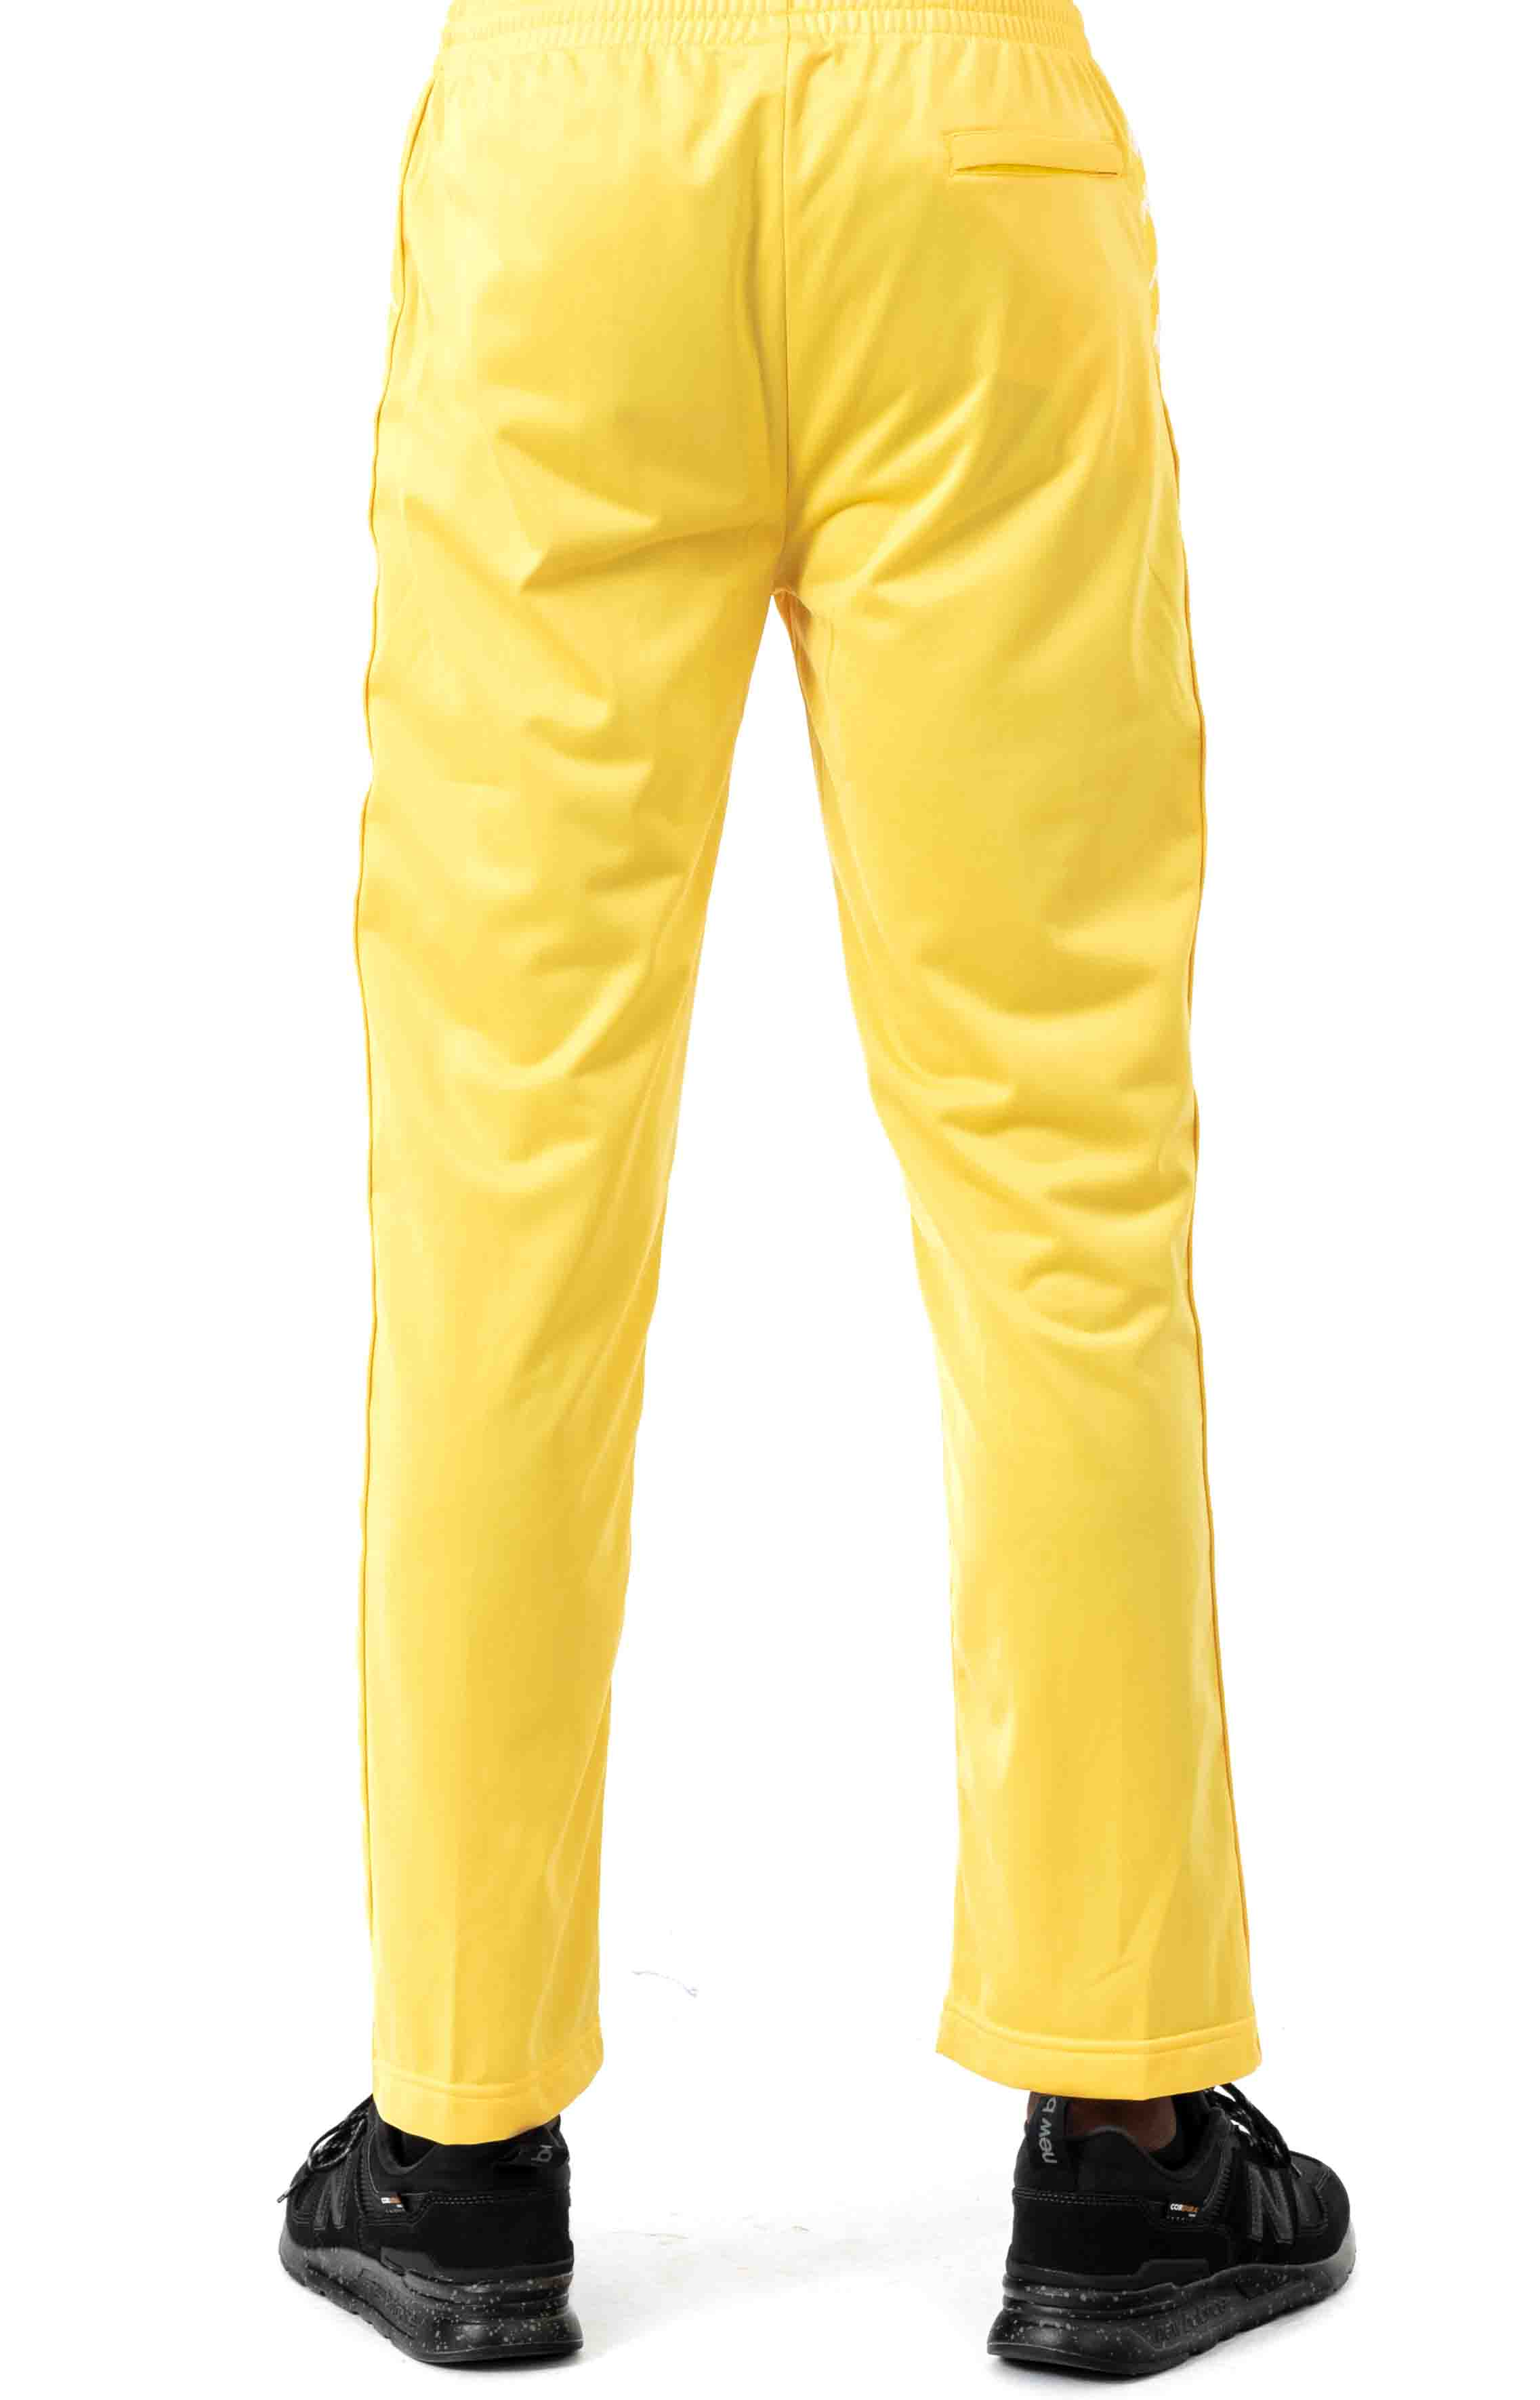 222 Banda Astoriazz Trackpant - Yellow/White 3